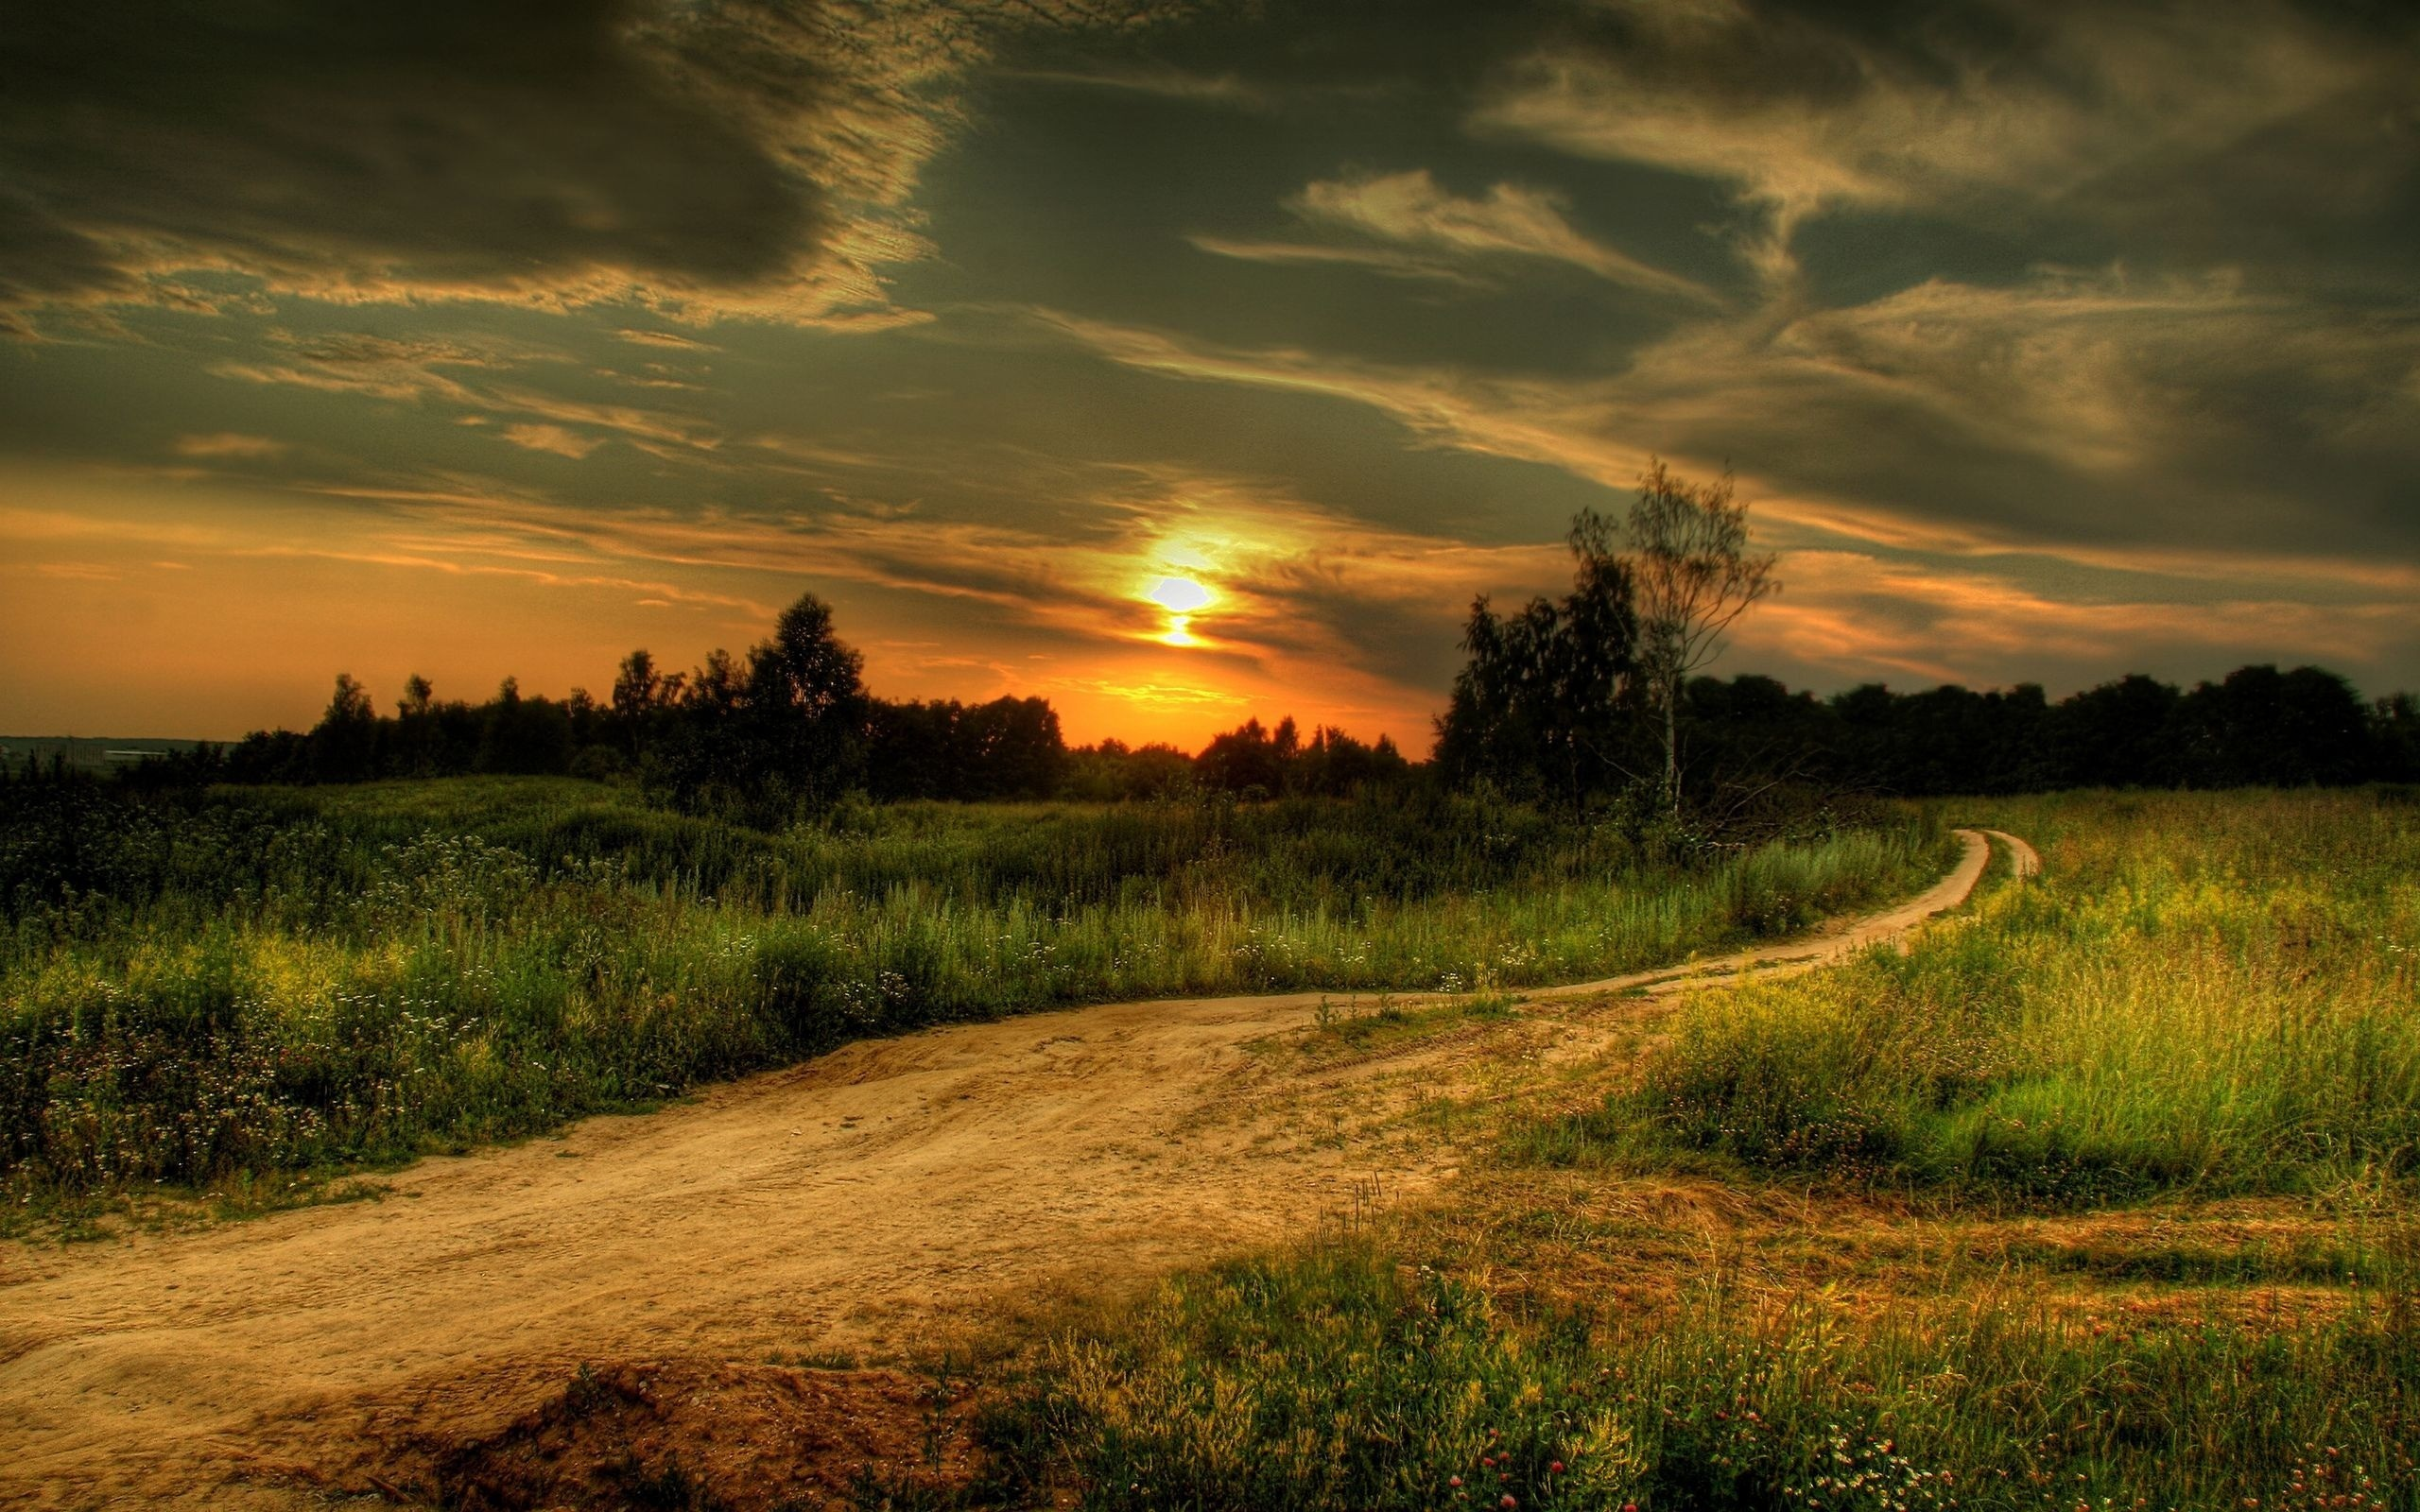 sunset Landscapes roads HD Wallpaper